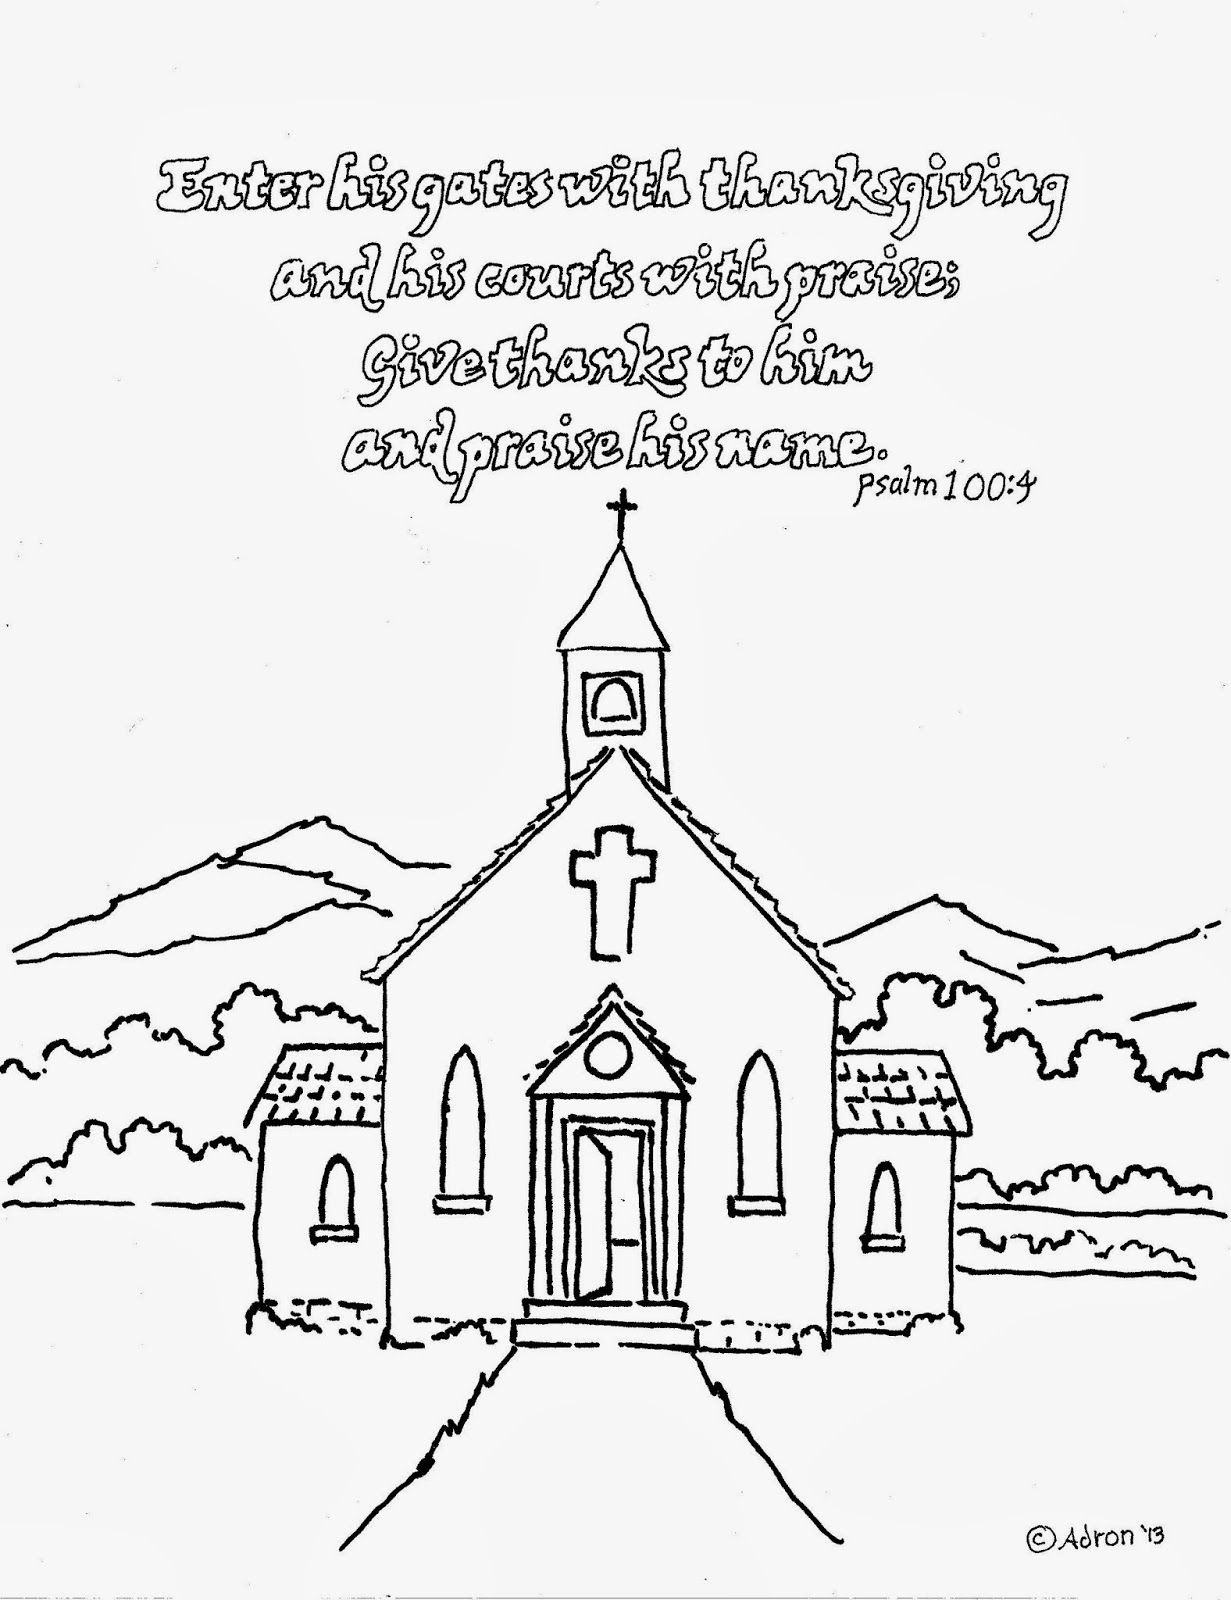 Thanksgiving coloring pages with bible verses - Coloring Pages For Kids By Mr Adron Enter His Gates With Thanksgiving Free Kid S Colo